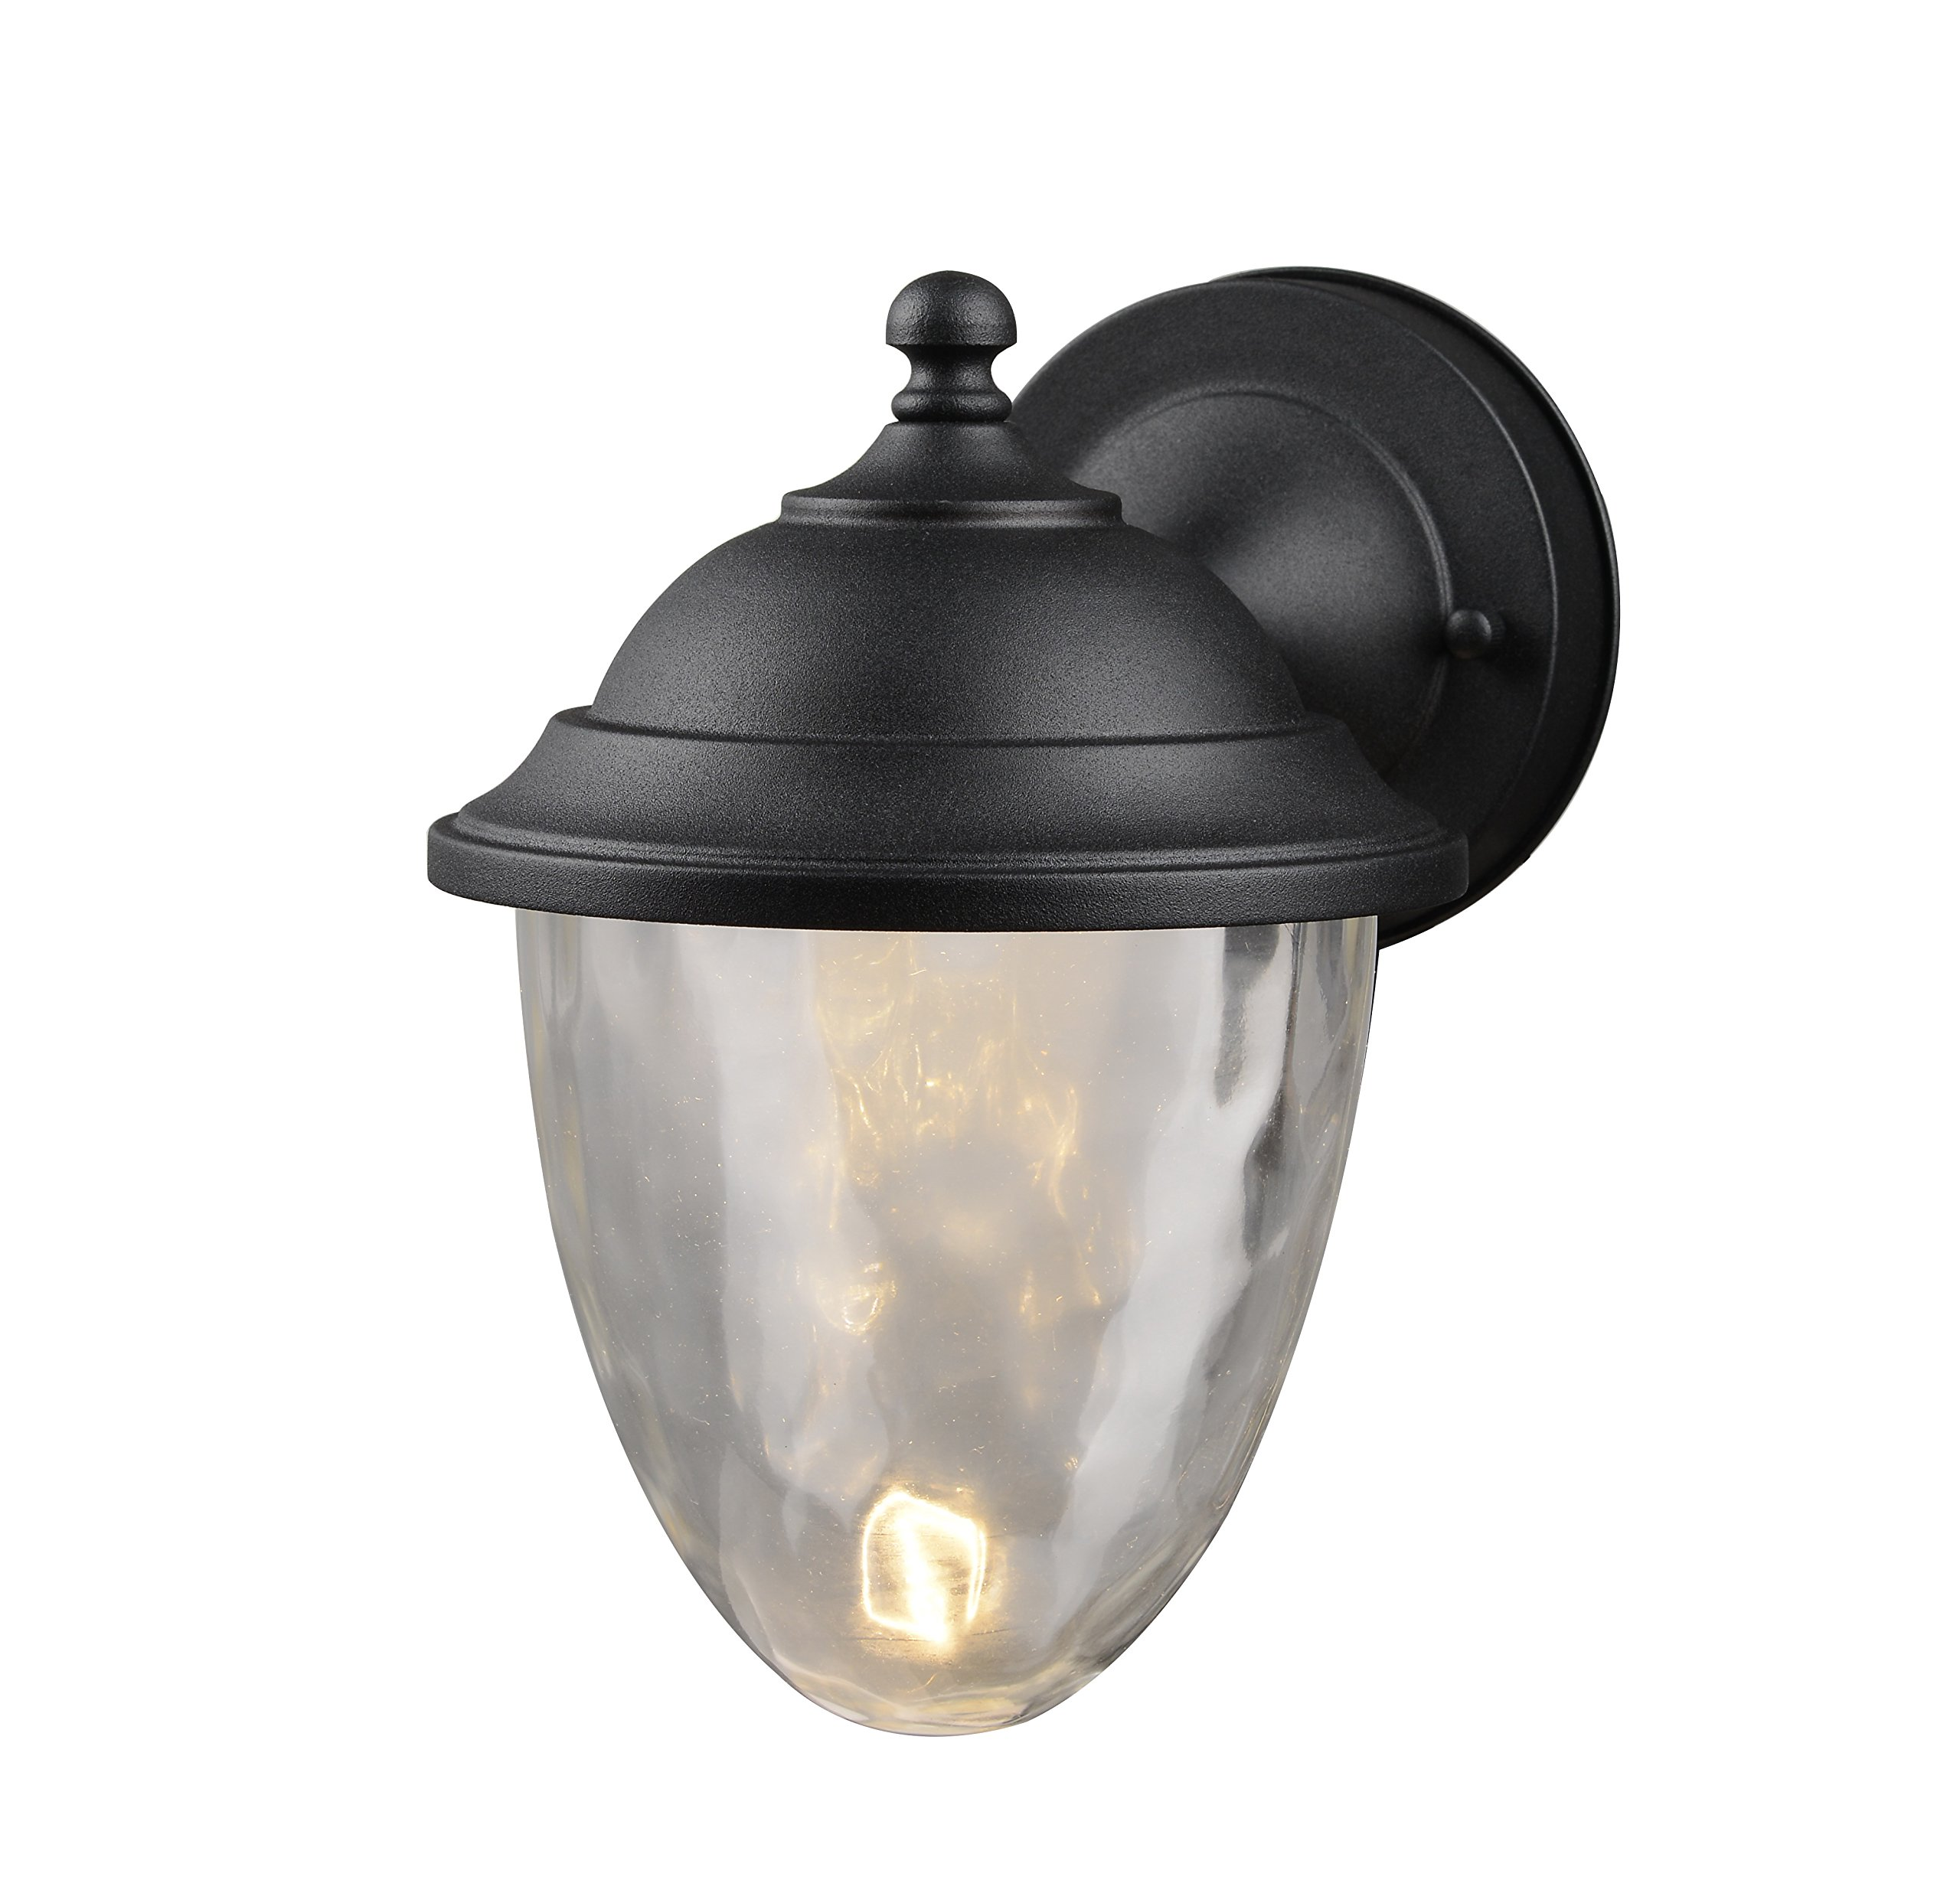 Hardware House 21-9464 Outdoor Large Wall Lantern with Water Glass